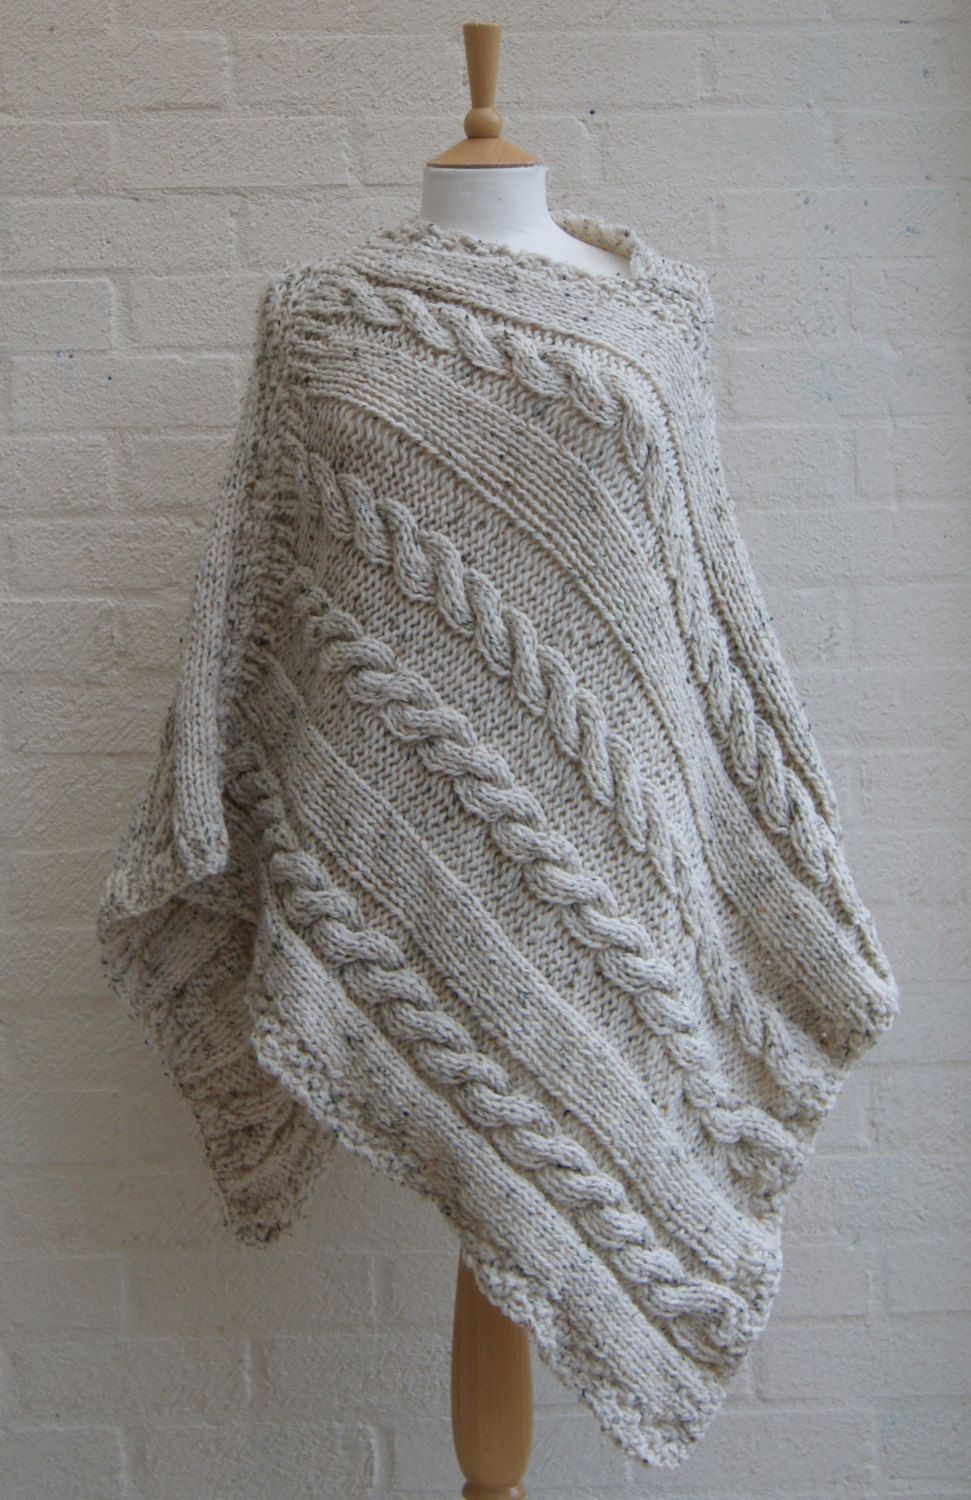 Knitting Ponchos : Chunky knit oatmeal poncho women knitted